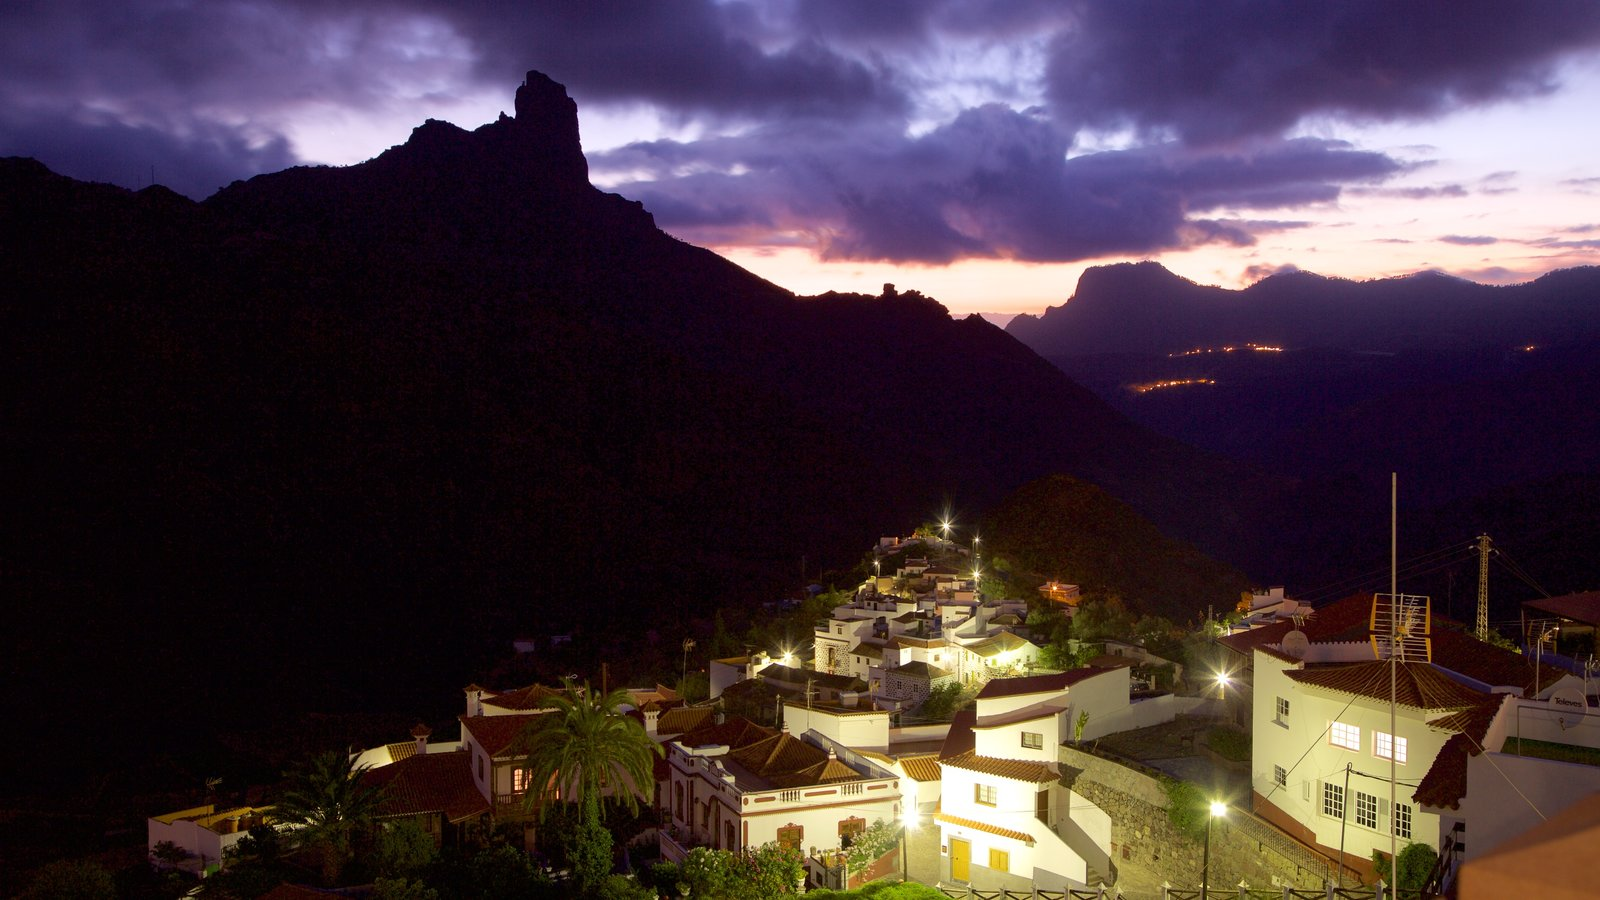 Tejeda showing mountains, night scenes and a small town or village